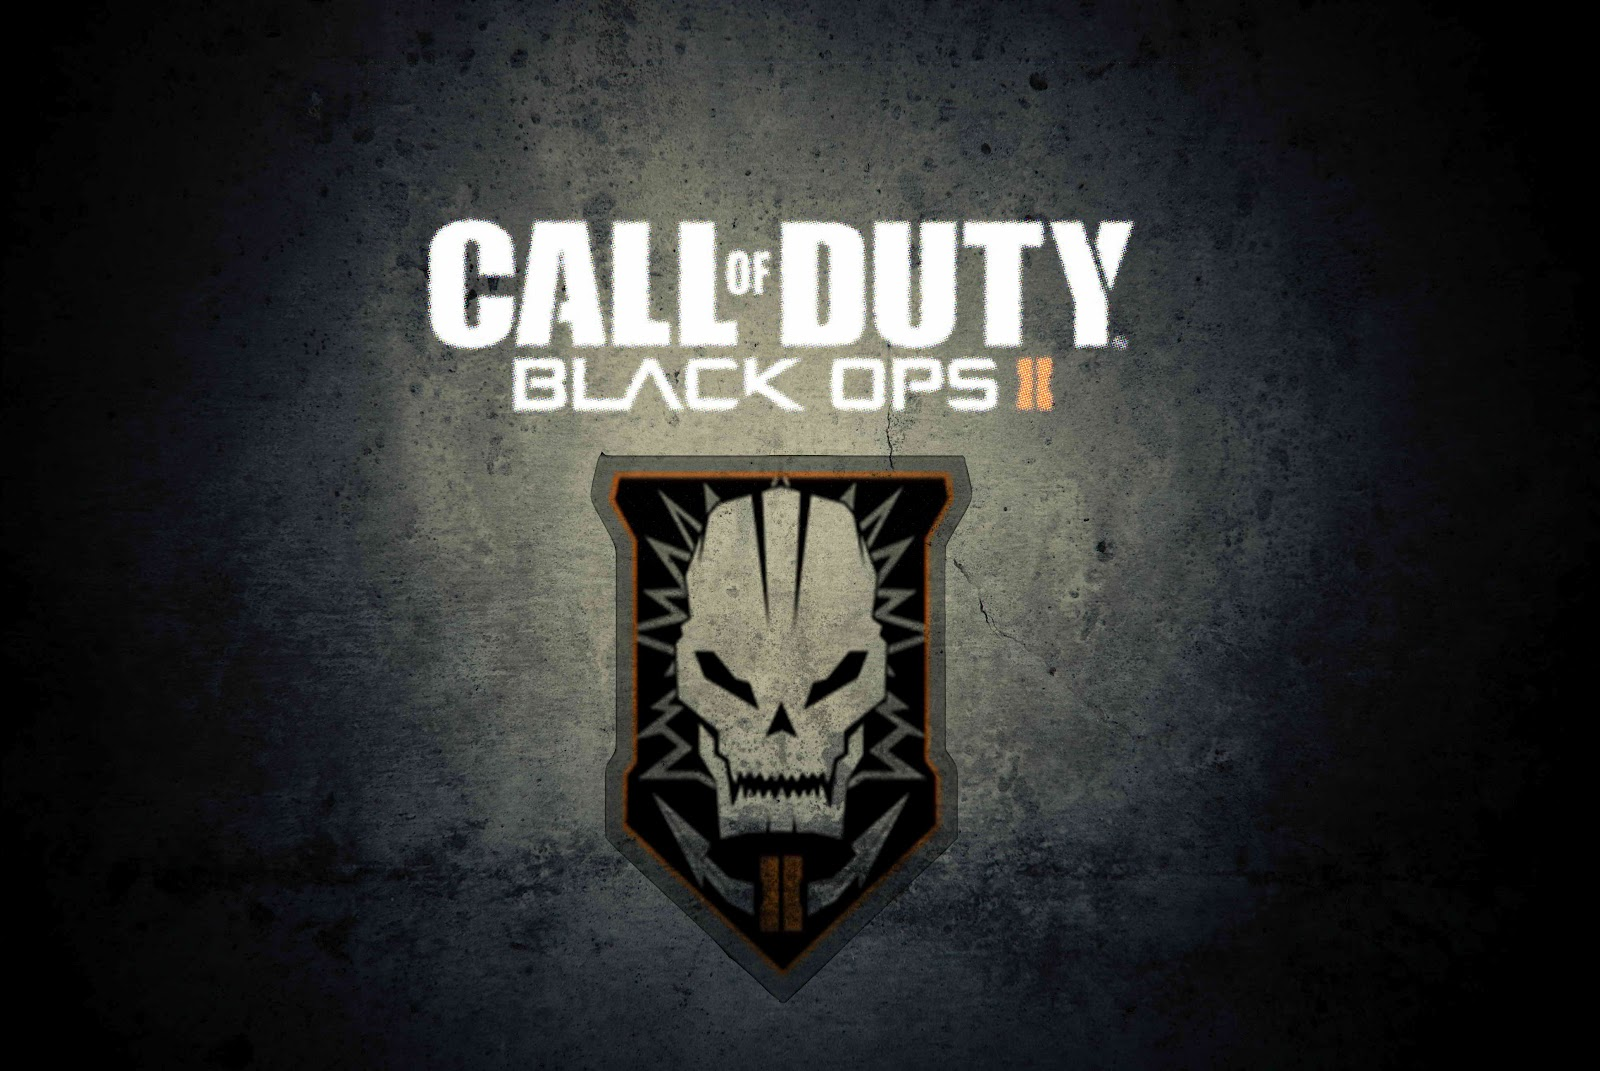 call of duty black ops 2 essay